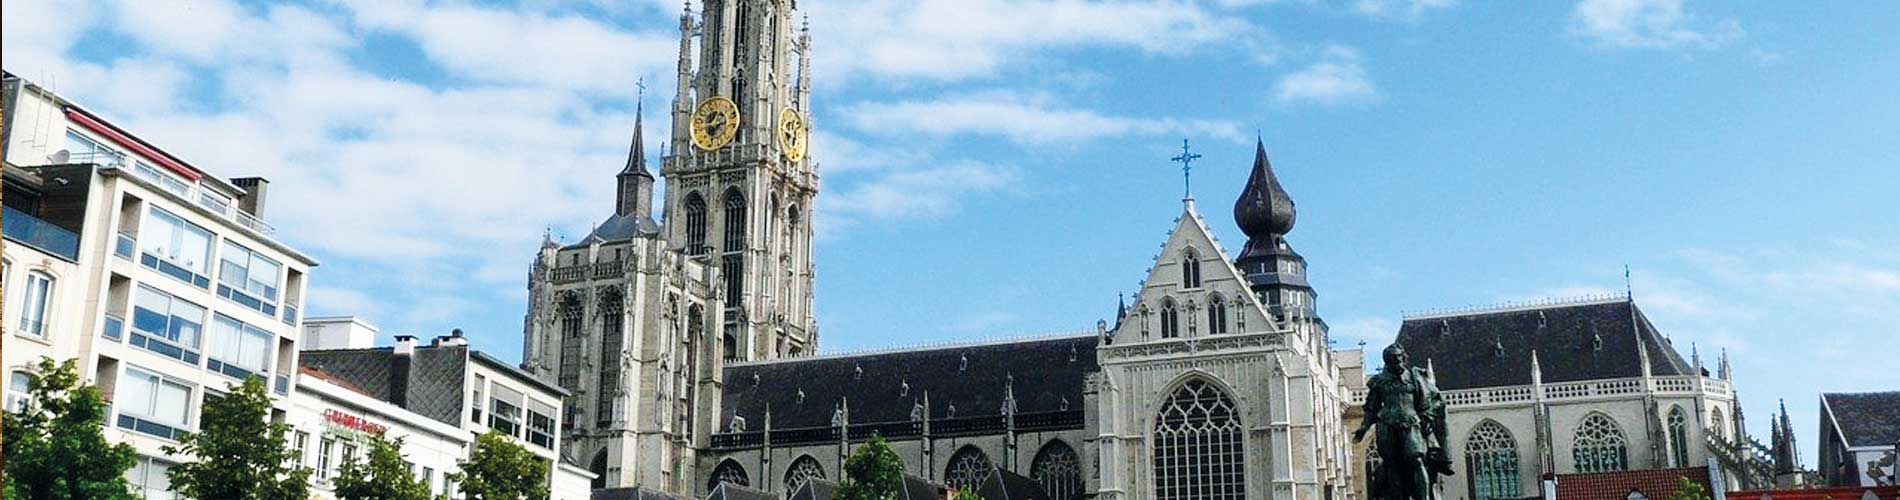 Blog_EuropeanCapitalCulture_Antwerp_1900x500_Q120